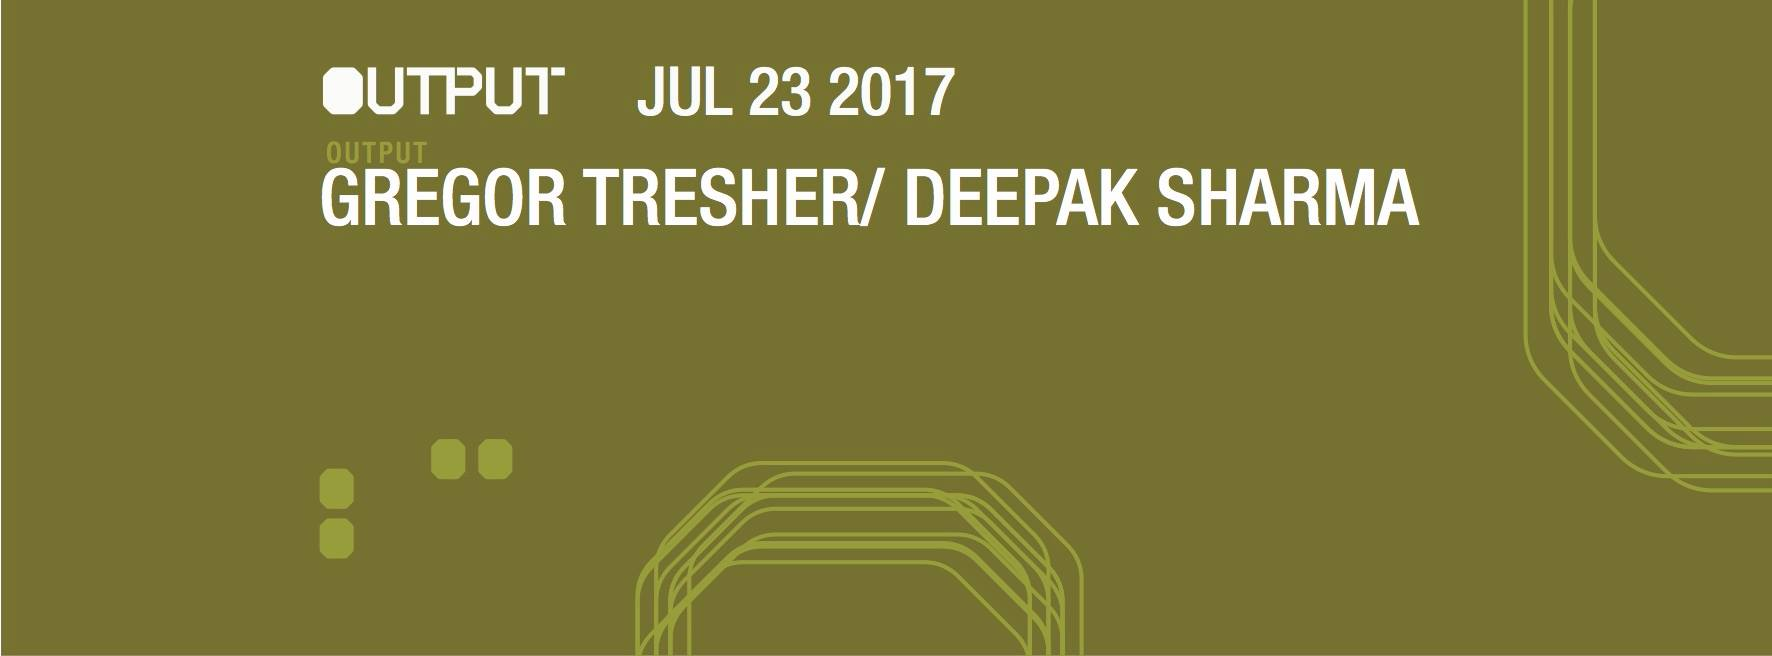 Gregor Tresher Deepak Sharma Hidden Recordings Output Robbie Lumpkin Promotions